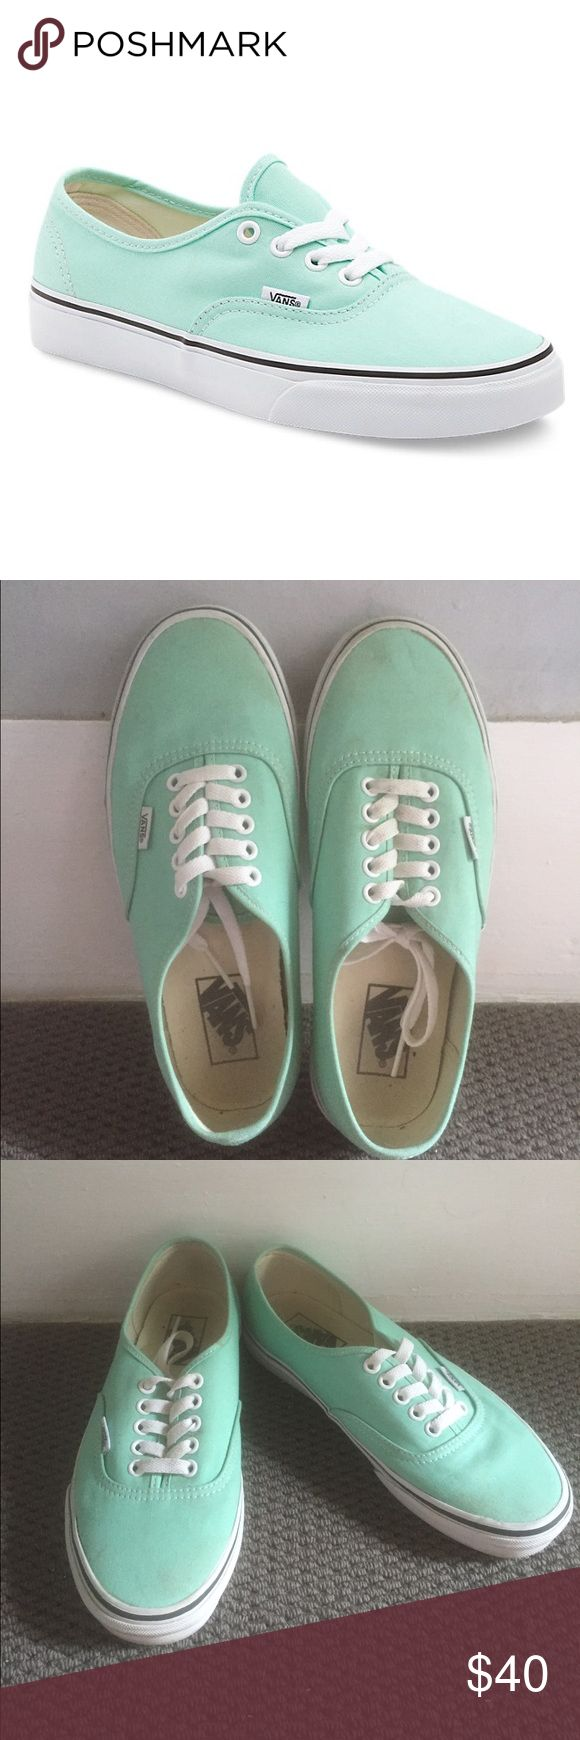 Teal vans Teal vans with thick sole. Worn one time, the size was too big for me. Vans Shoes Sneakers